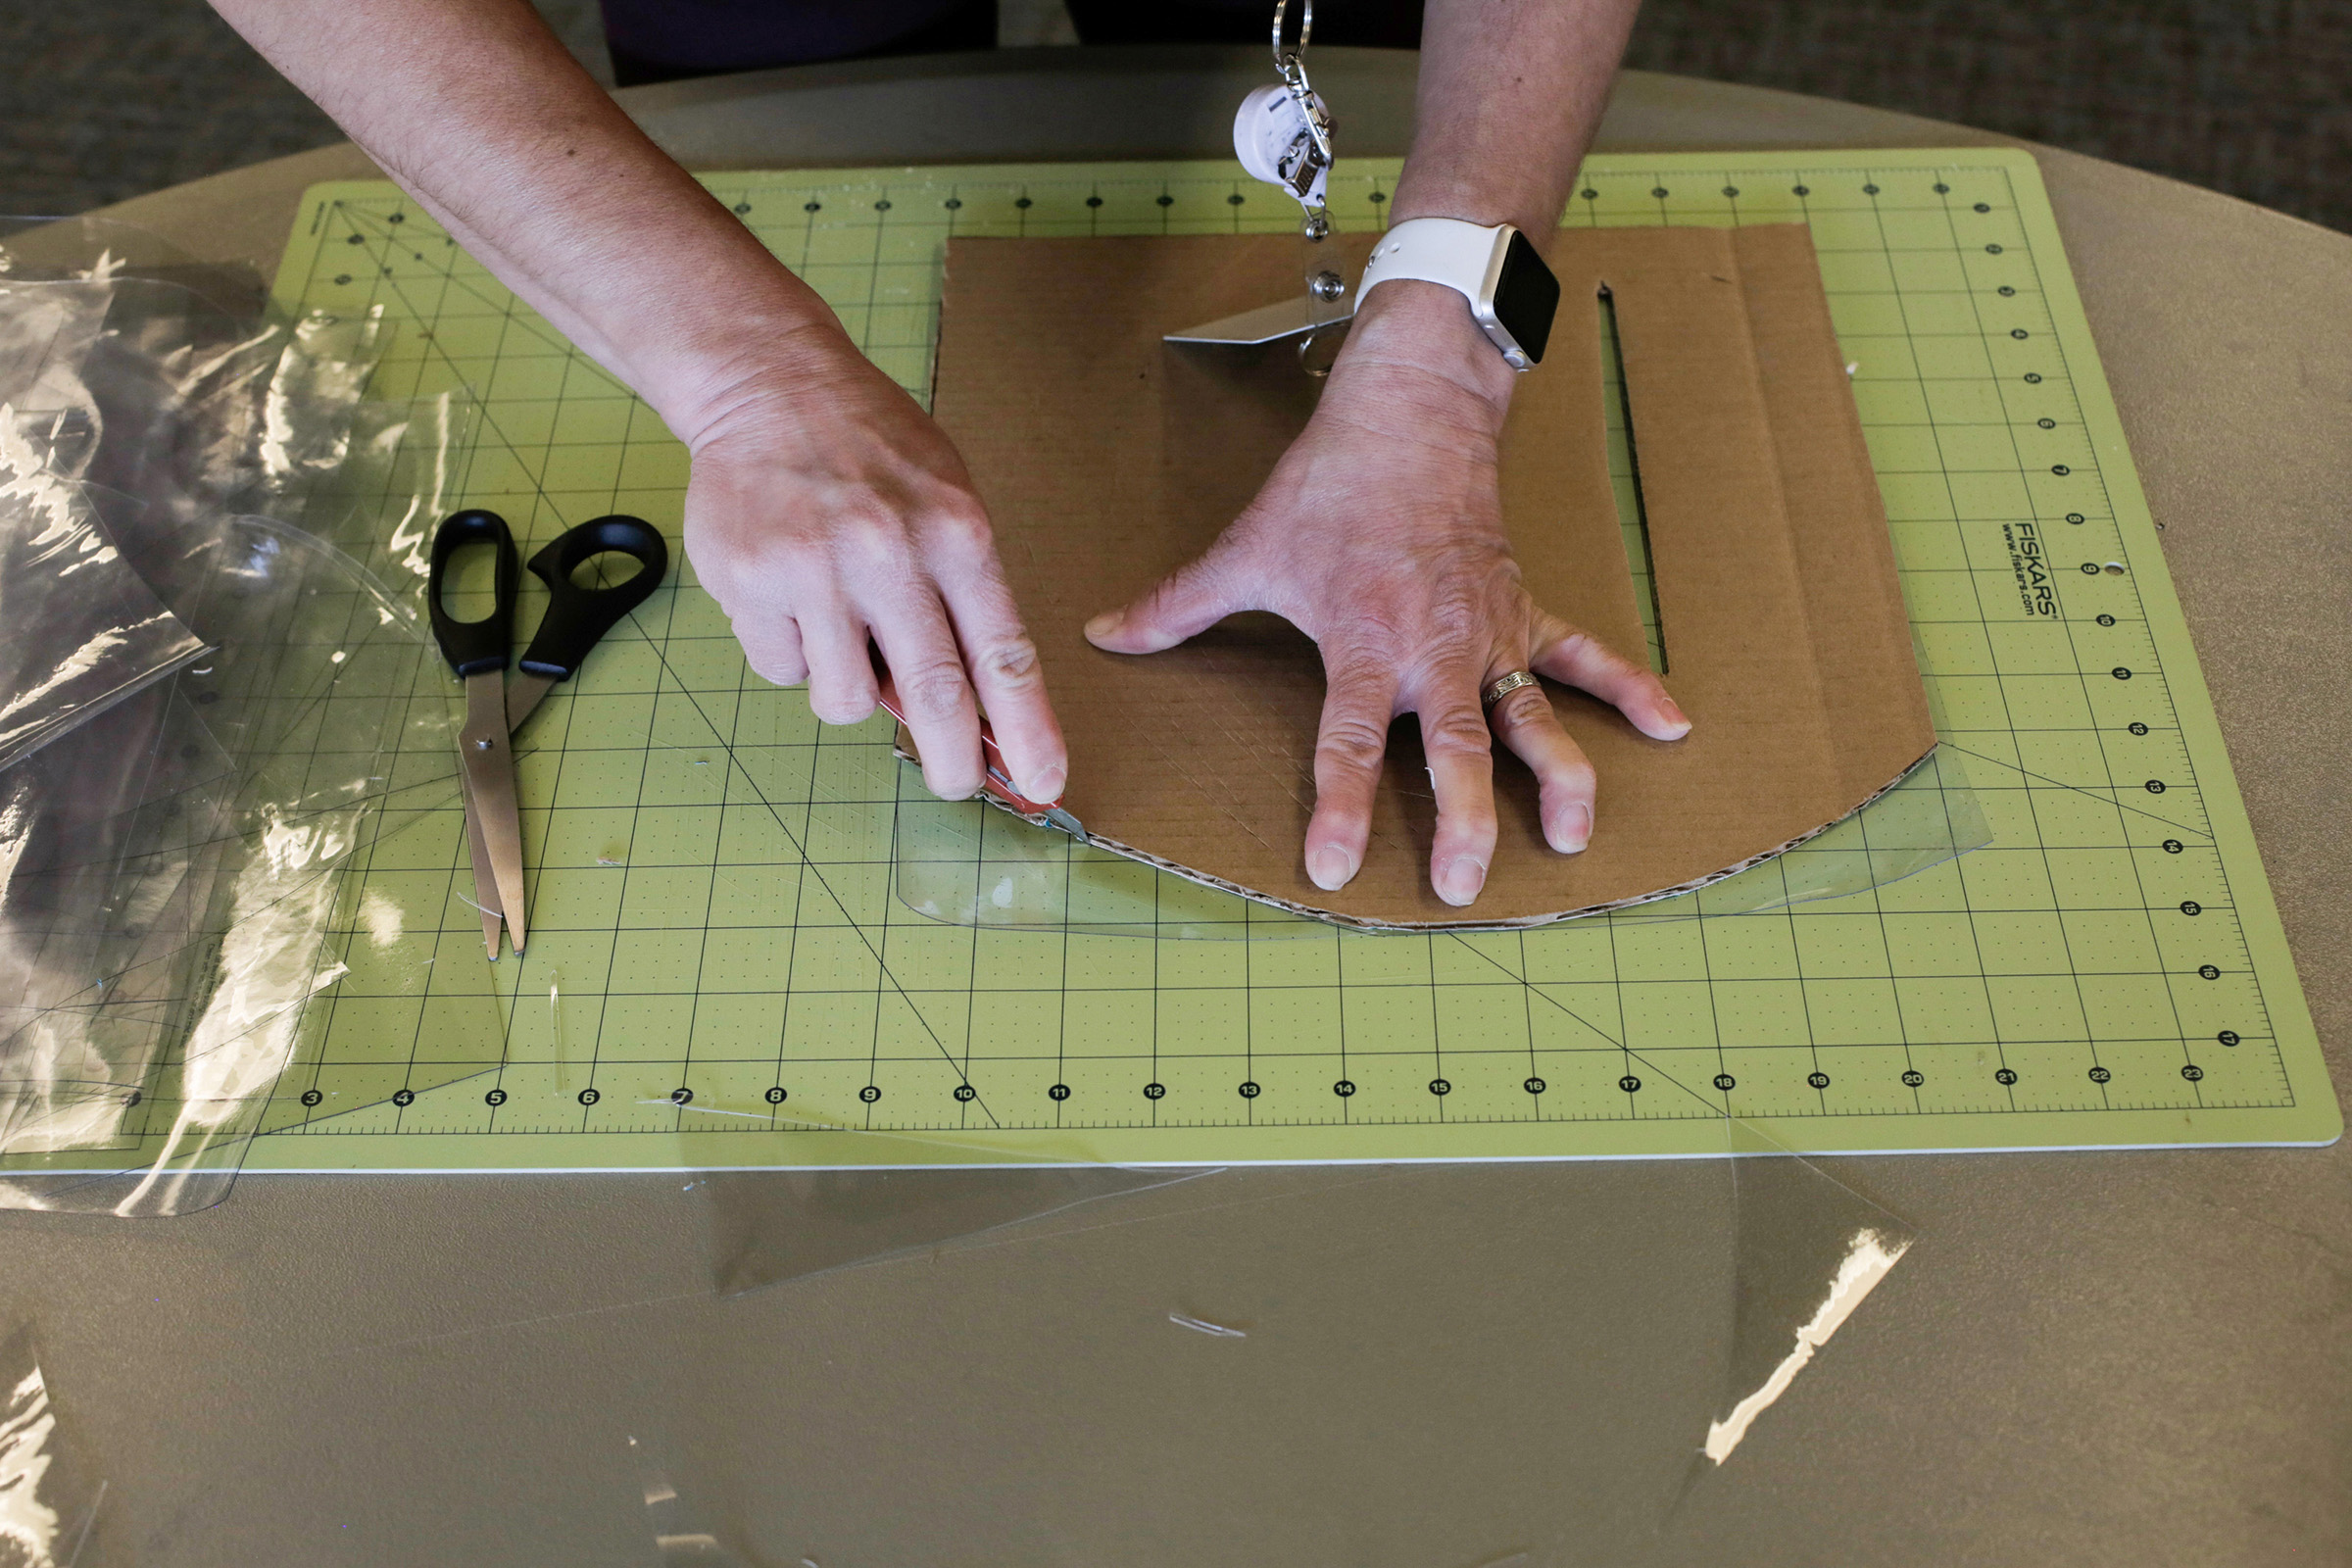 A volunteer cuts clear vinyl for assembling face shields as she and other volunteers meet an urgent need of local hospitals for personal protective equipment in Washington